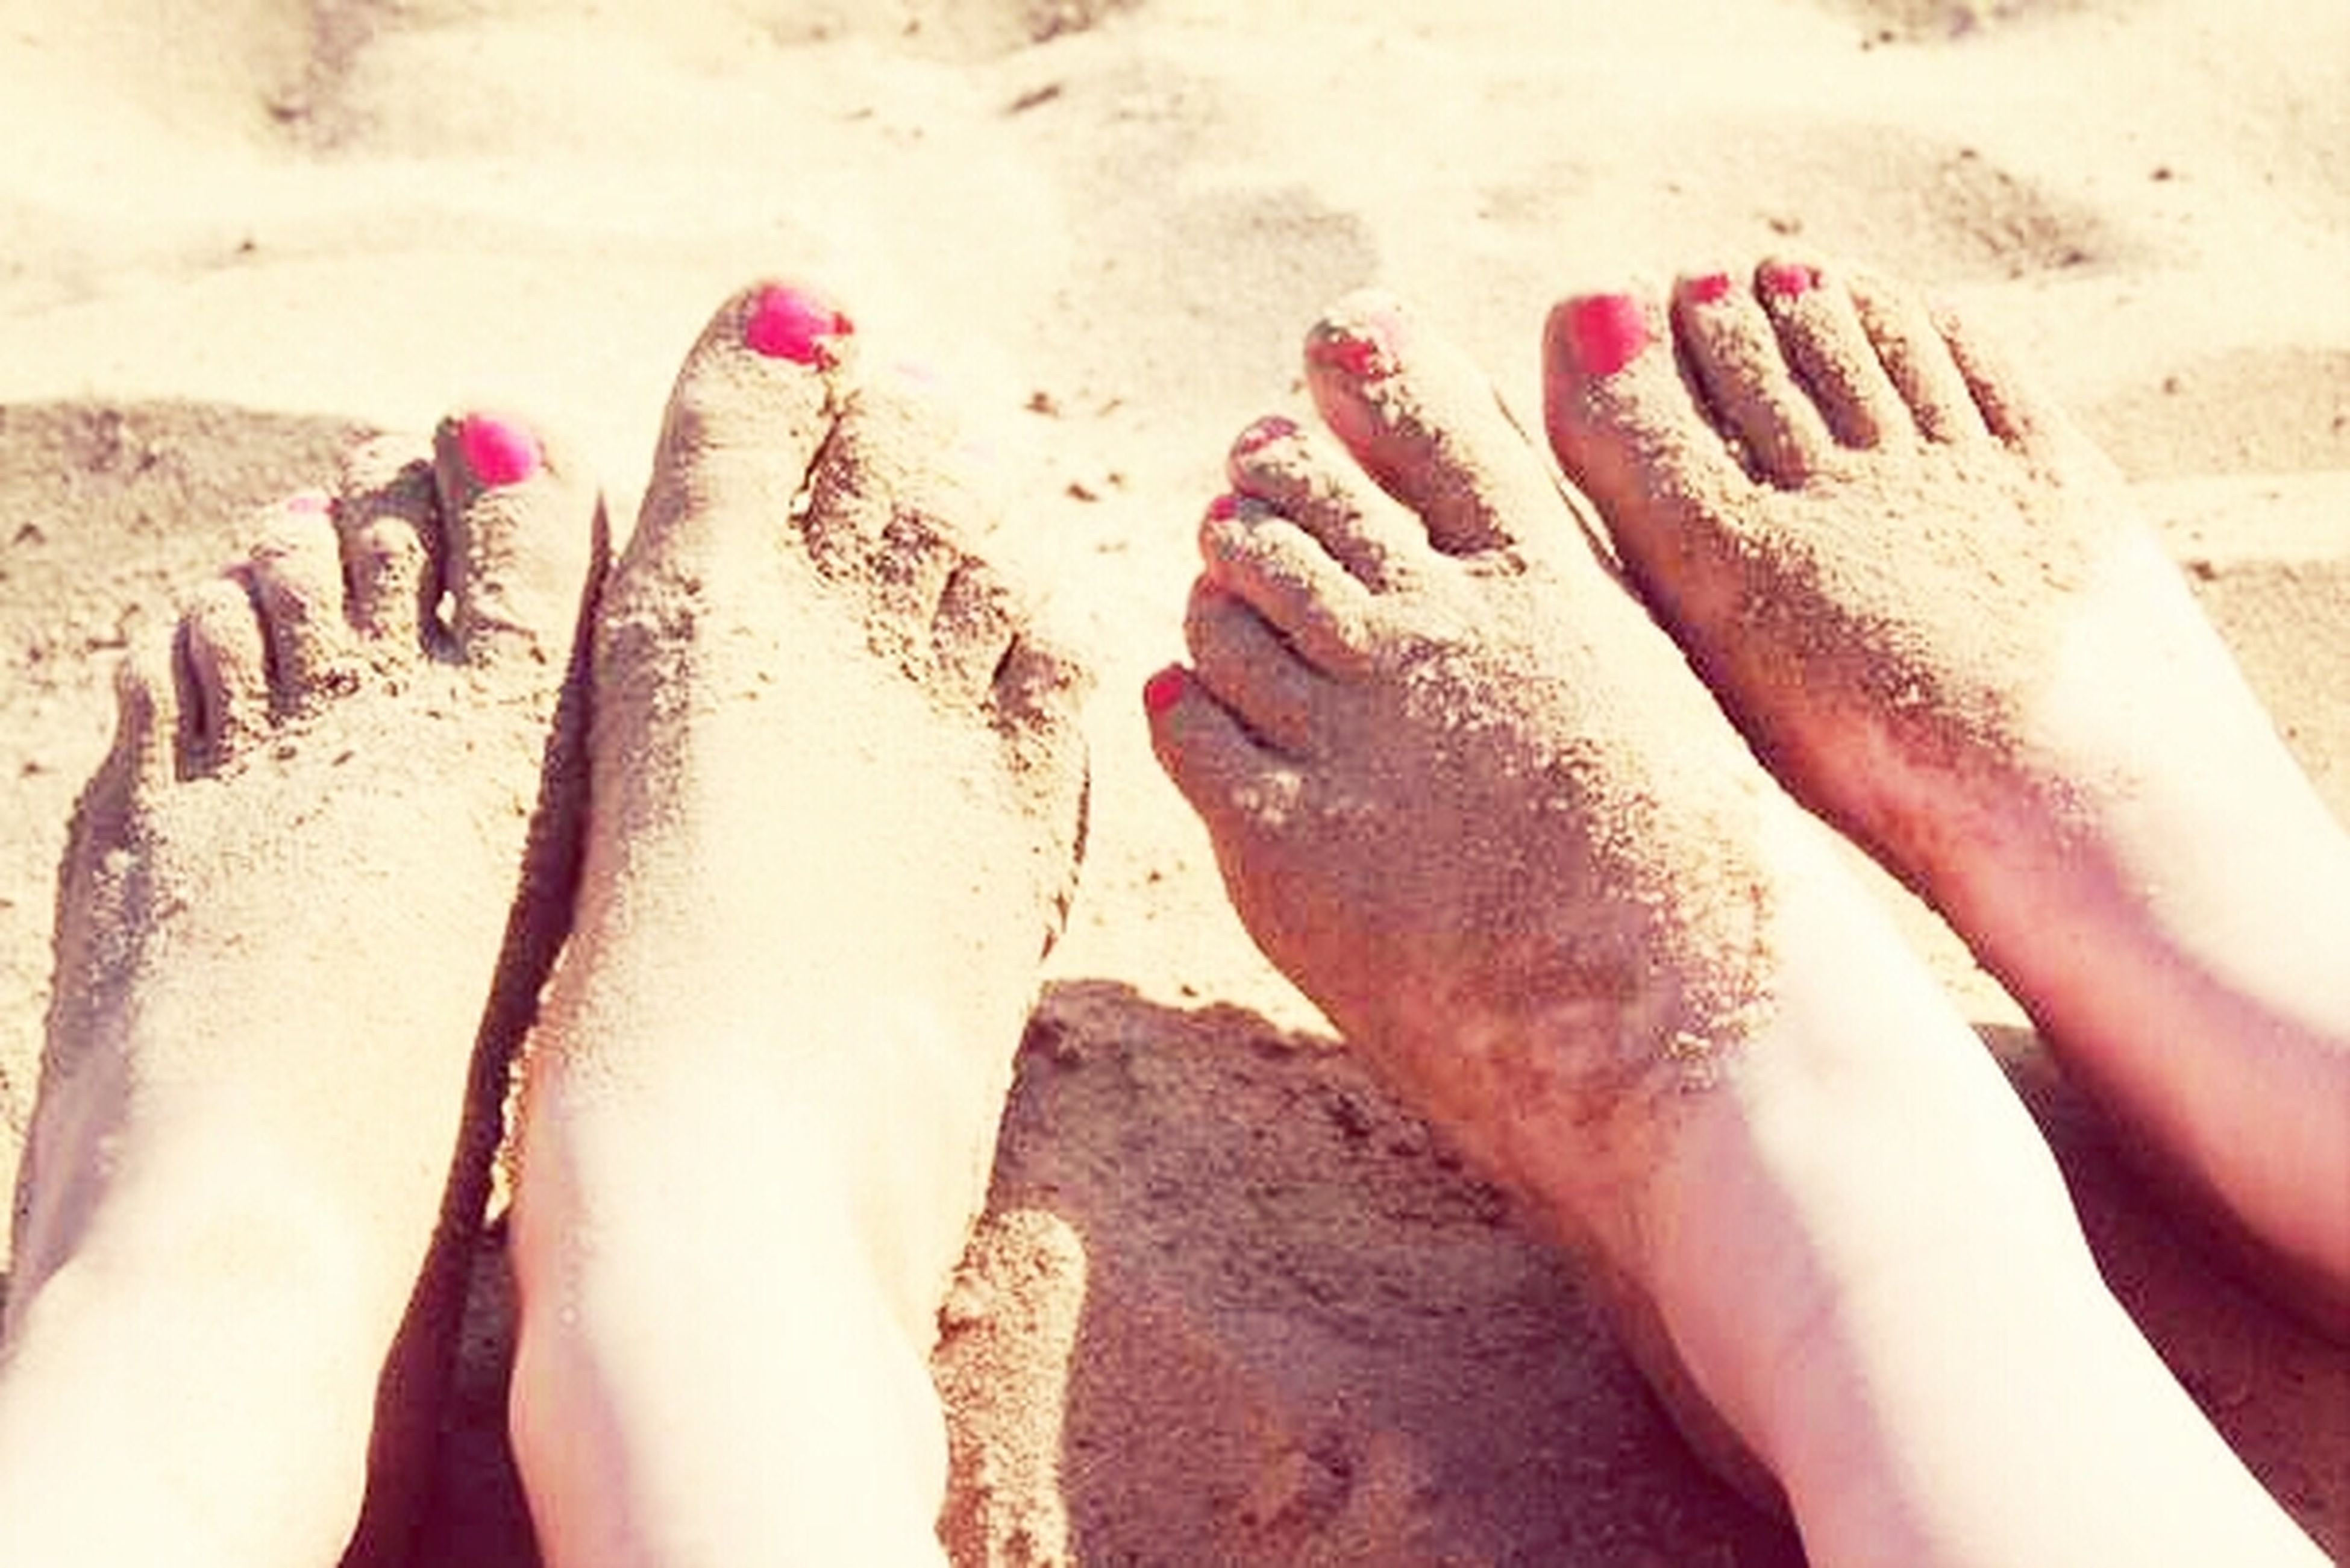 sand, beach, low section, person, lifestyles, barefoot, leisure activity, human foot, high angle view, part of, sunlight, unrecognizable person, day, personal perspective, outdoors